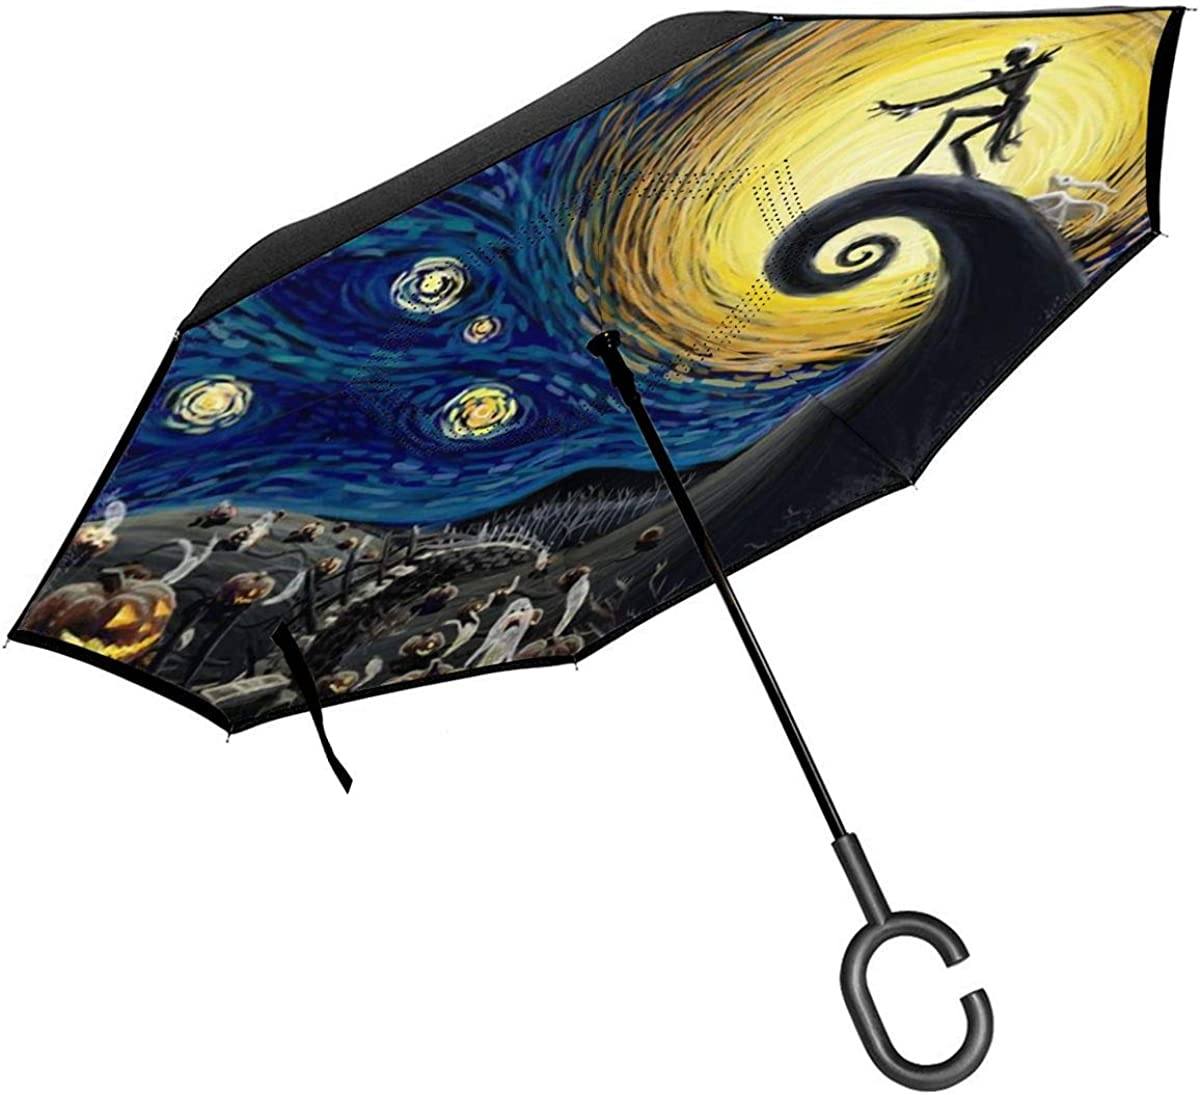 Windproof And Rainproof Double Folding Inverted Umbrella With C-Shaped Handle UV Protection Inverted Folding Umbrellas CLOUDY WITH A CHANCE OF MEATBALLS Car Reverse Umbrella